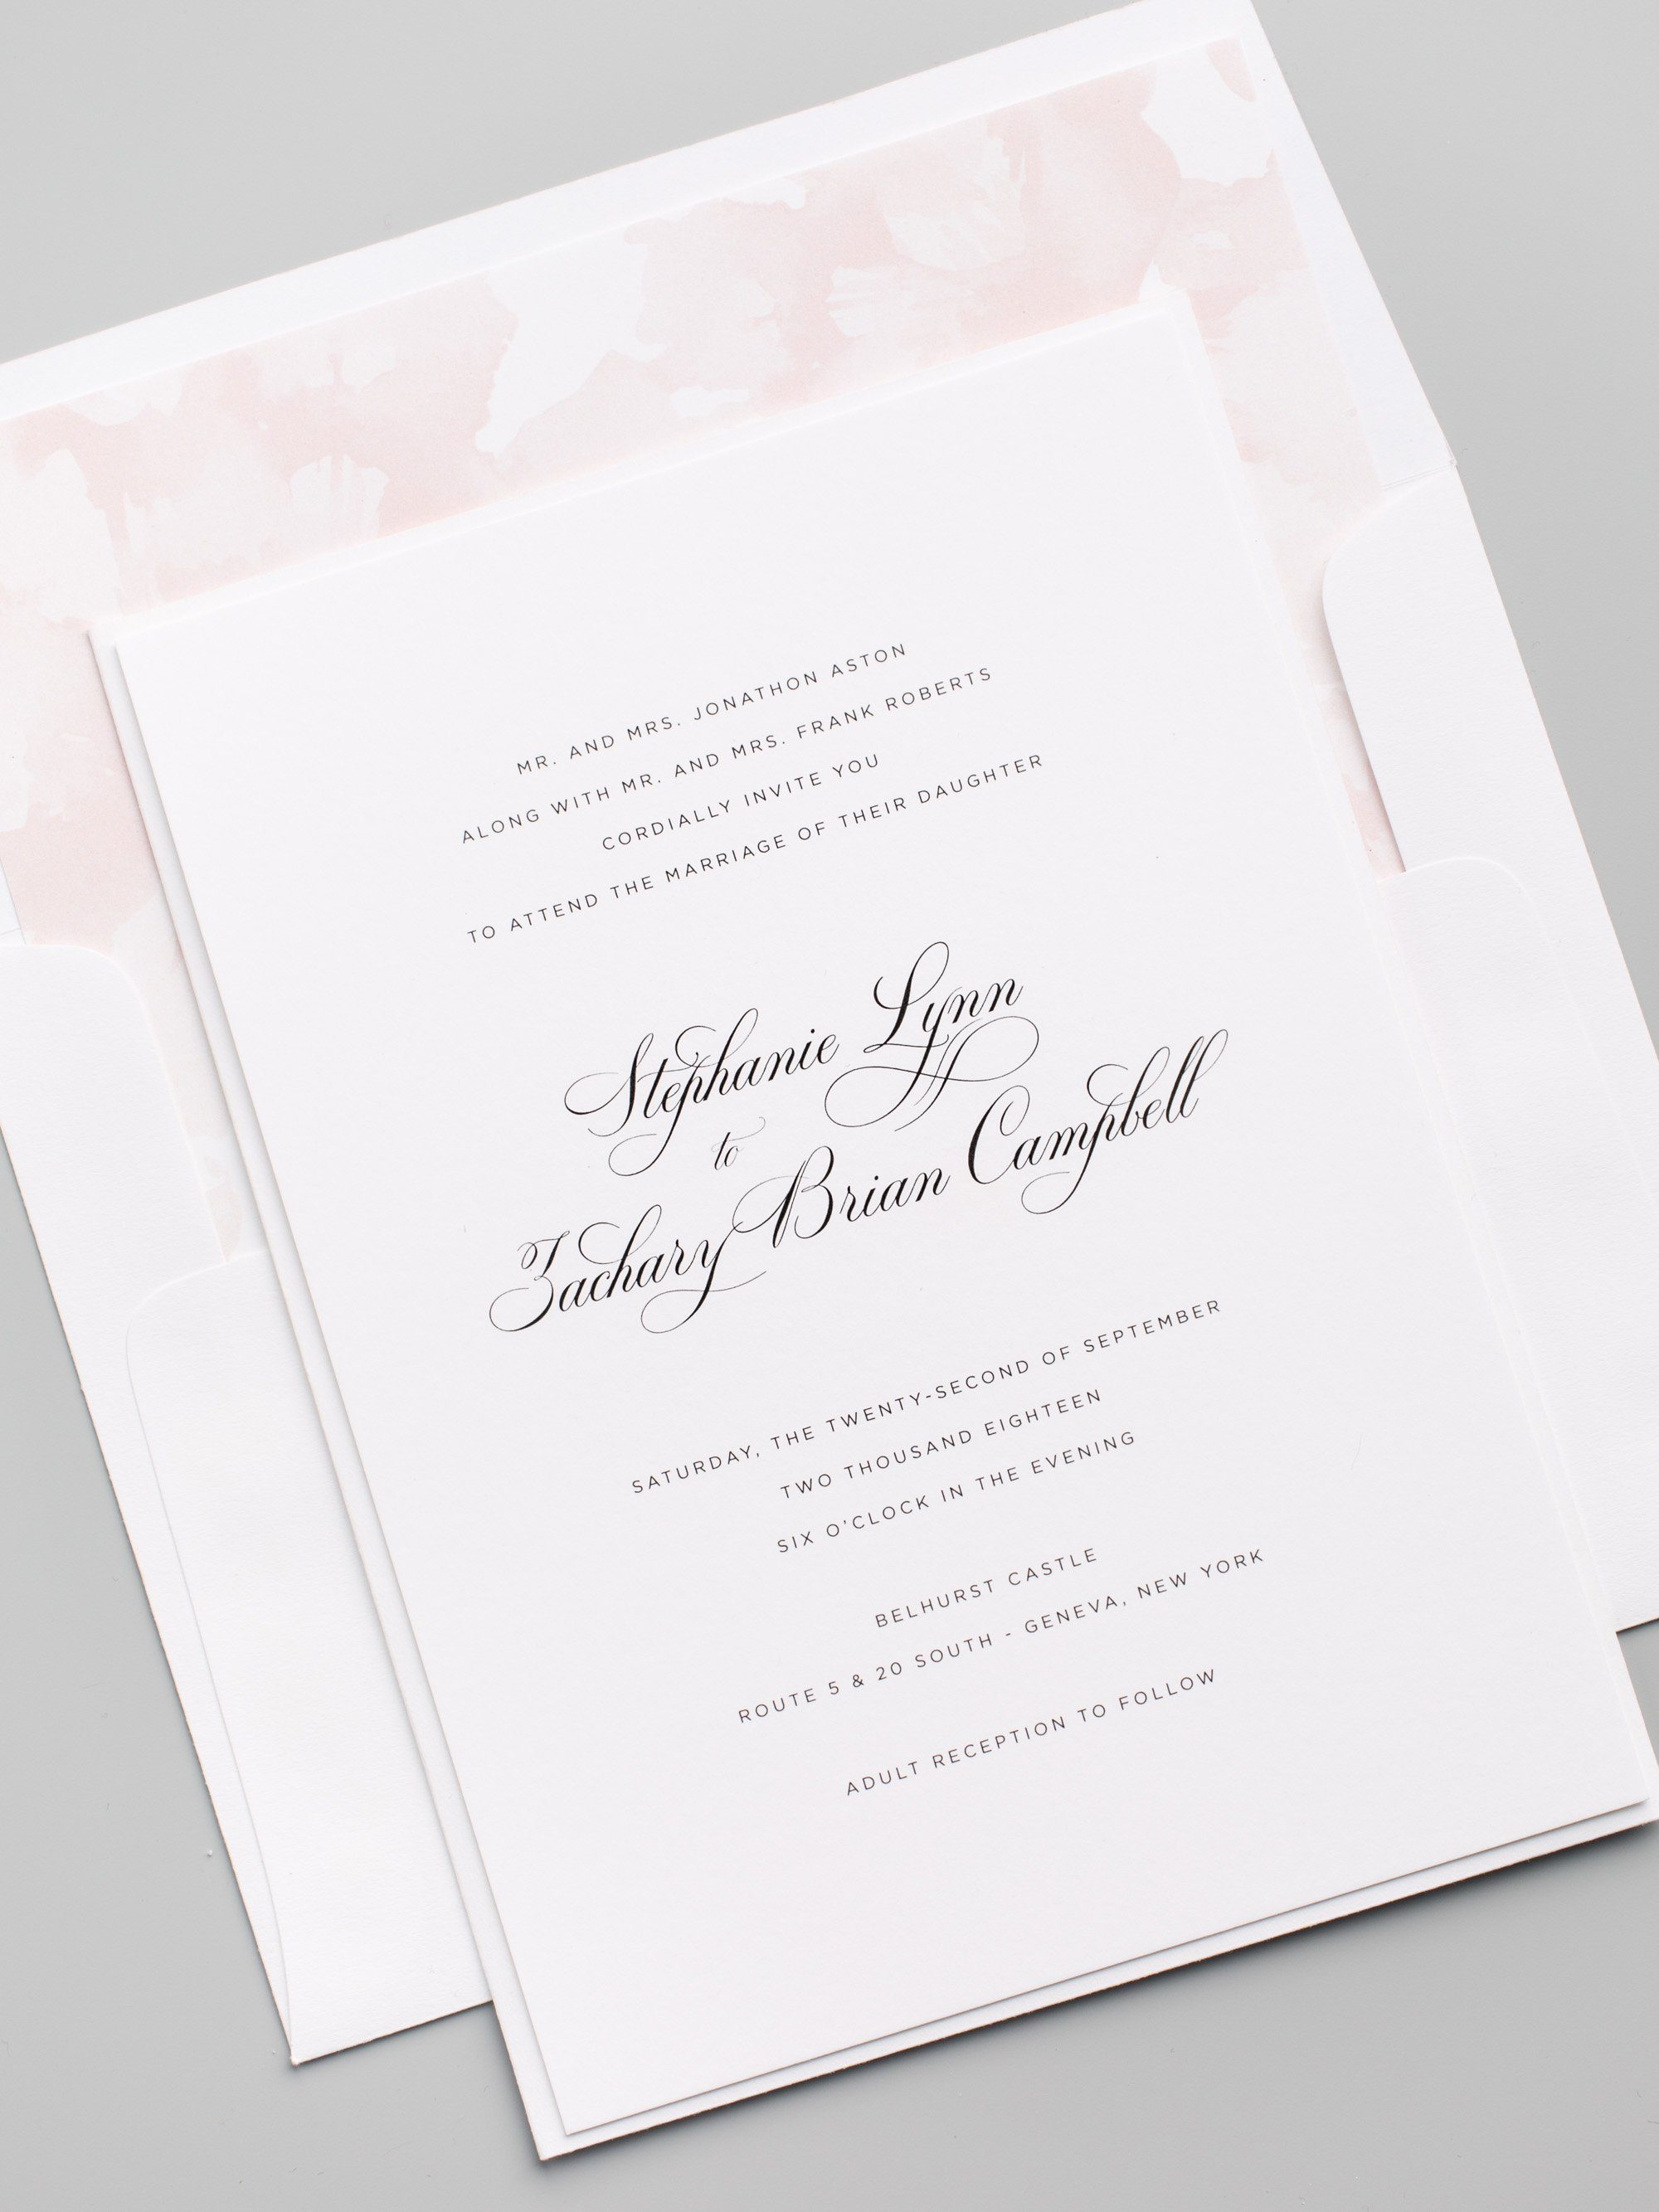 Delicate Calligraphy Wedding Invitations with a Watercolor Floral Envelope Liner